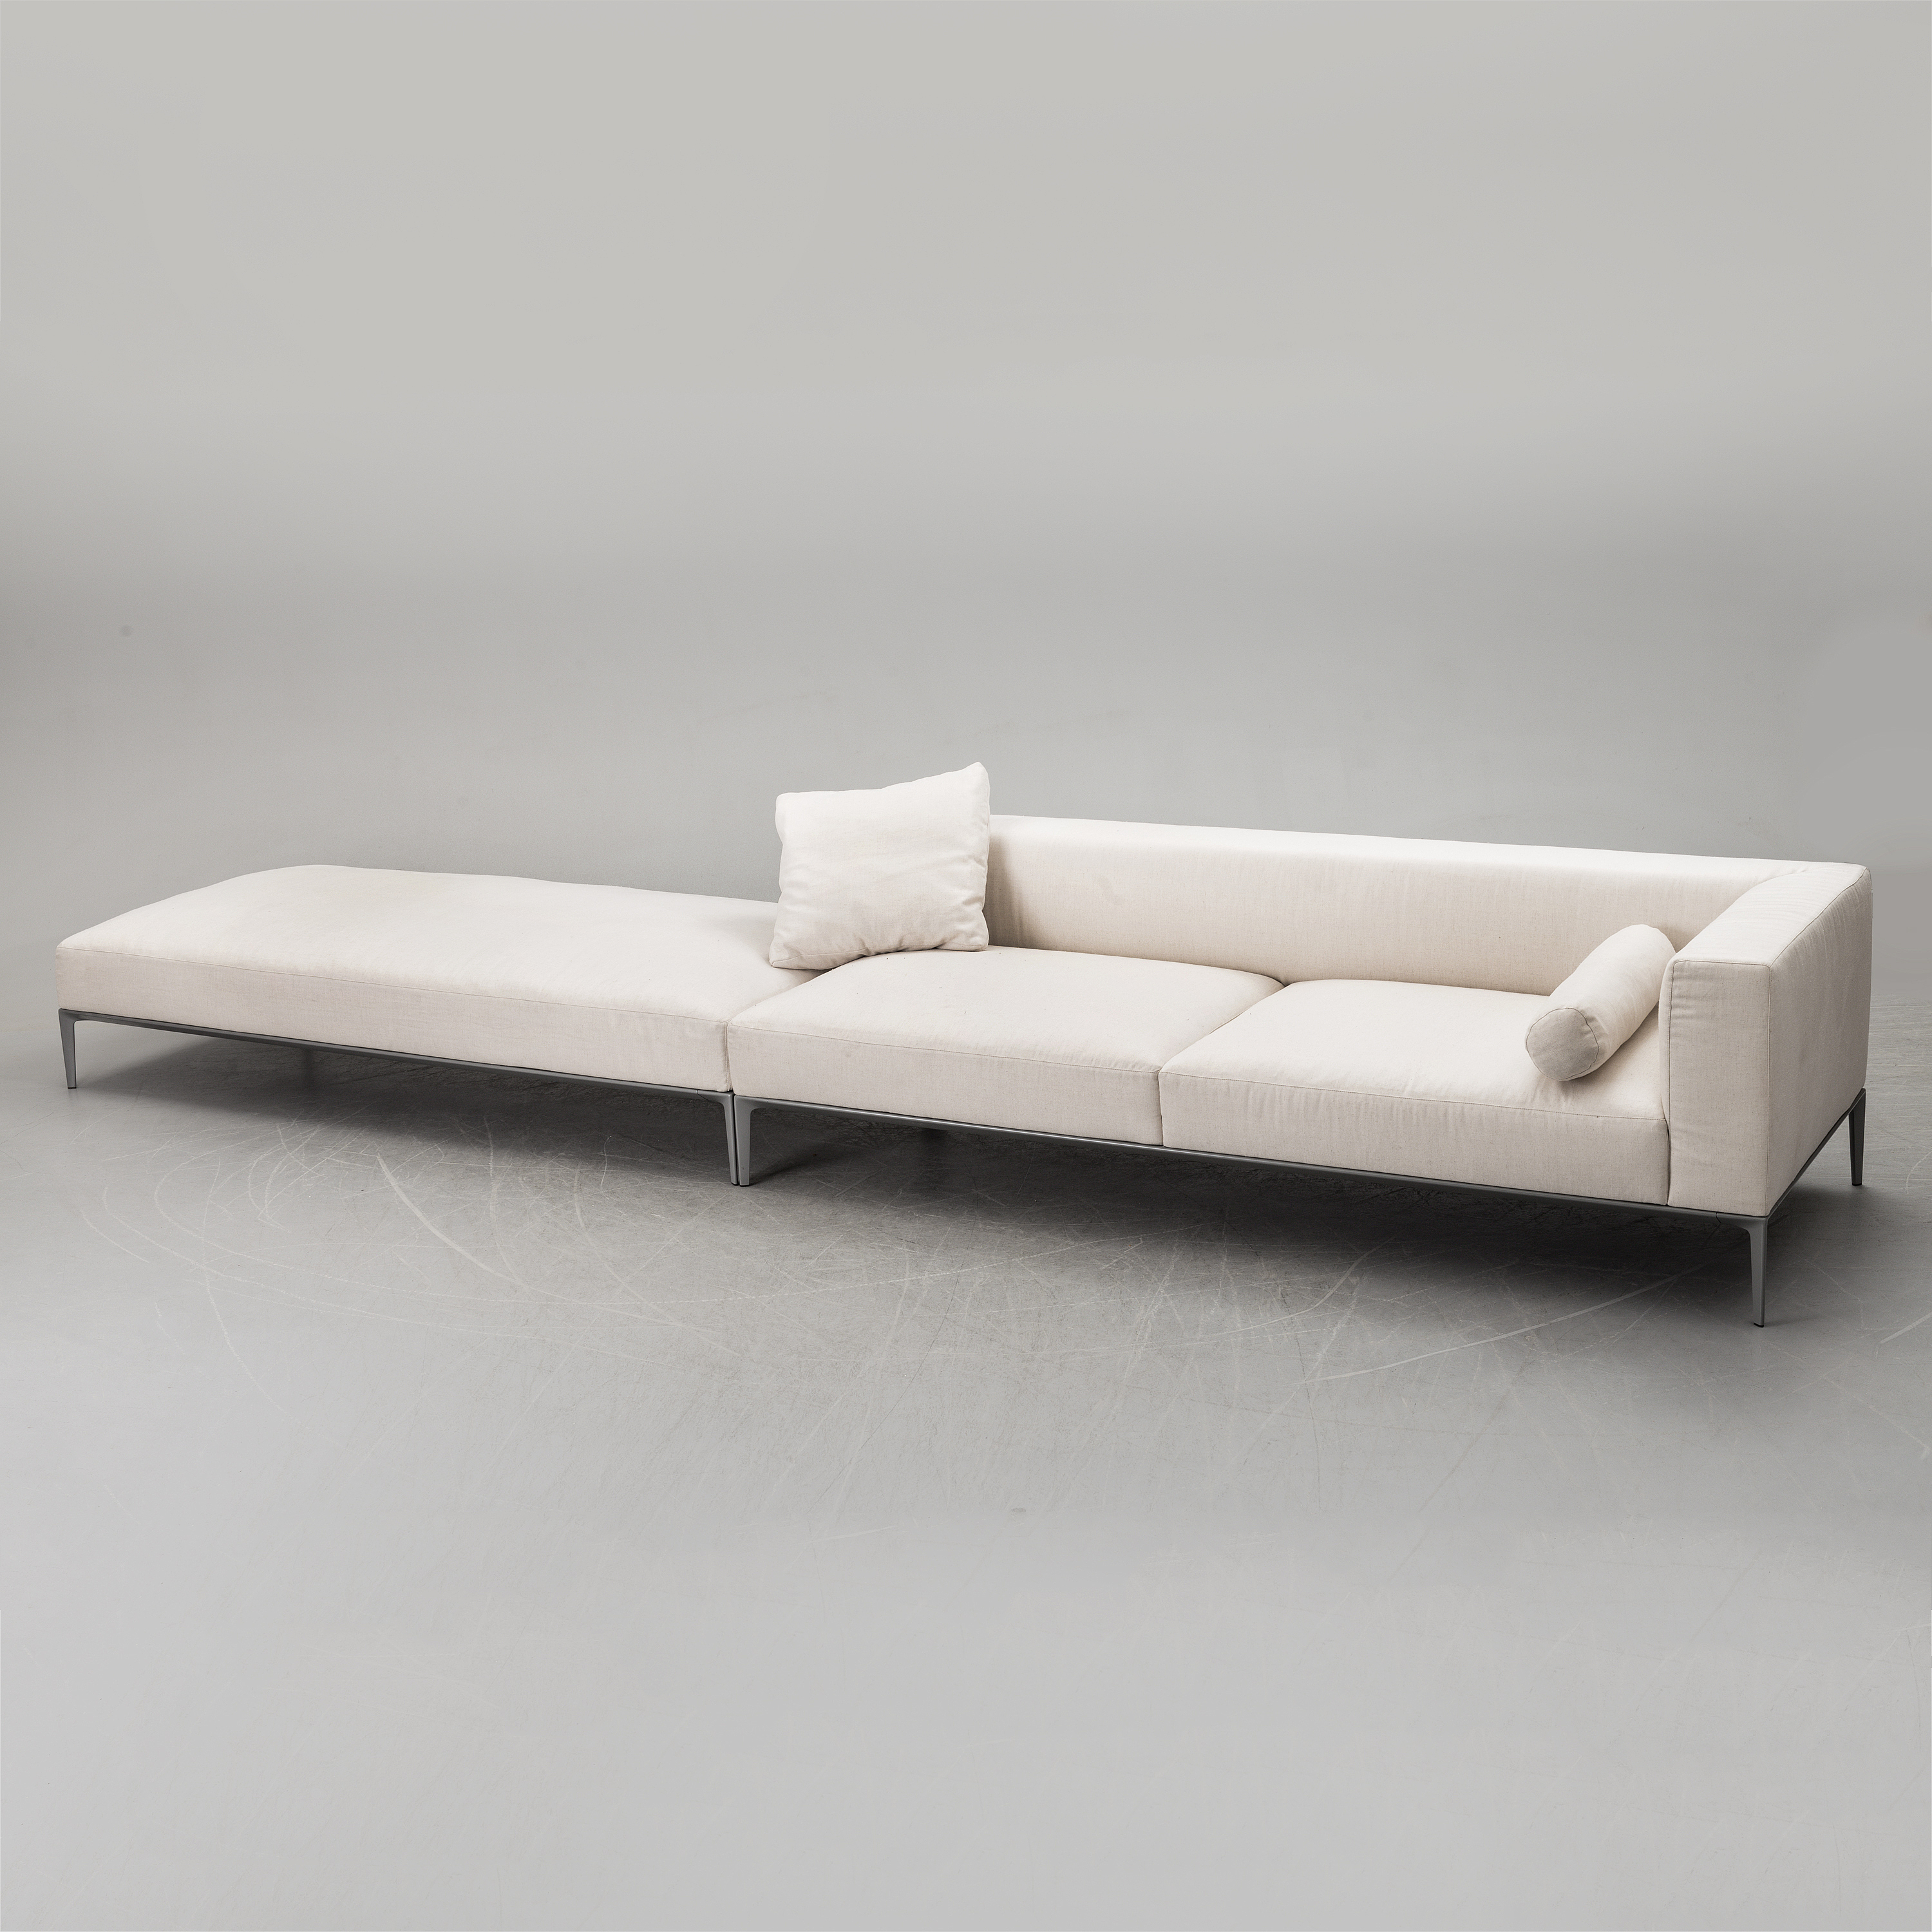 A Jaan Sofa By Walter Knoll For Eoos Late 20th Century Bukowskis